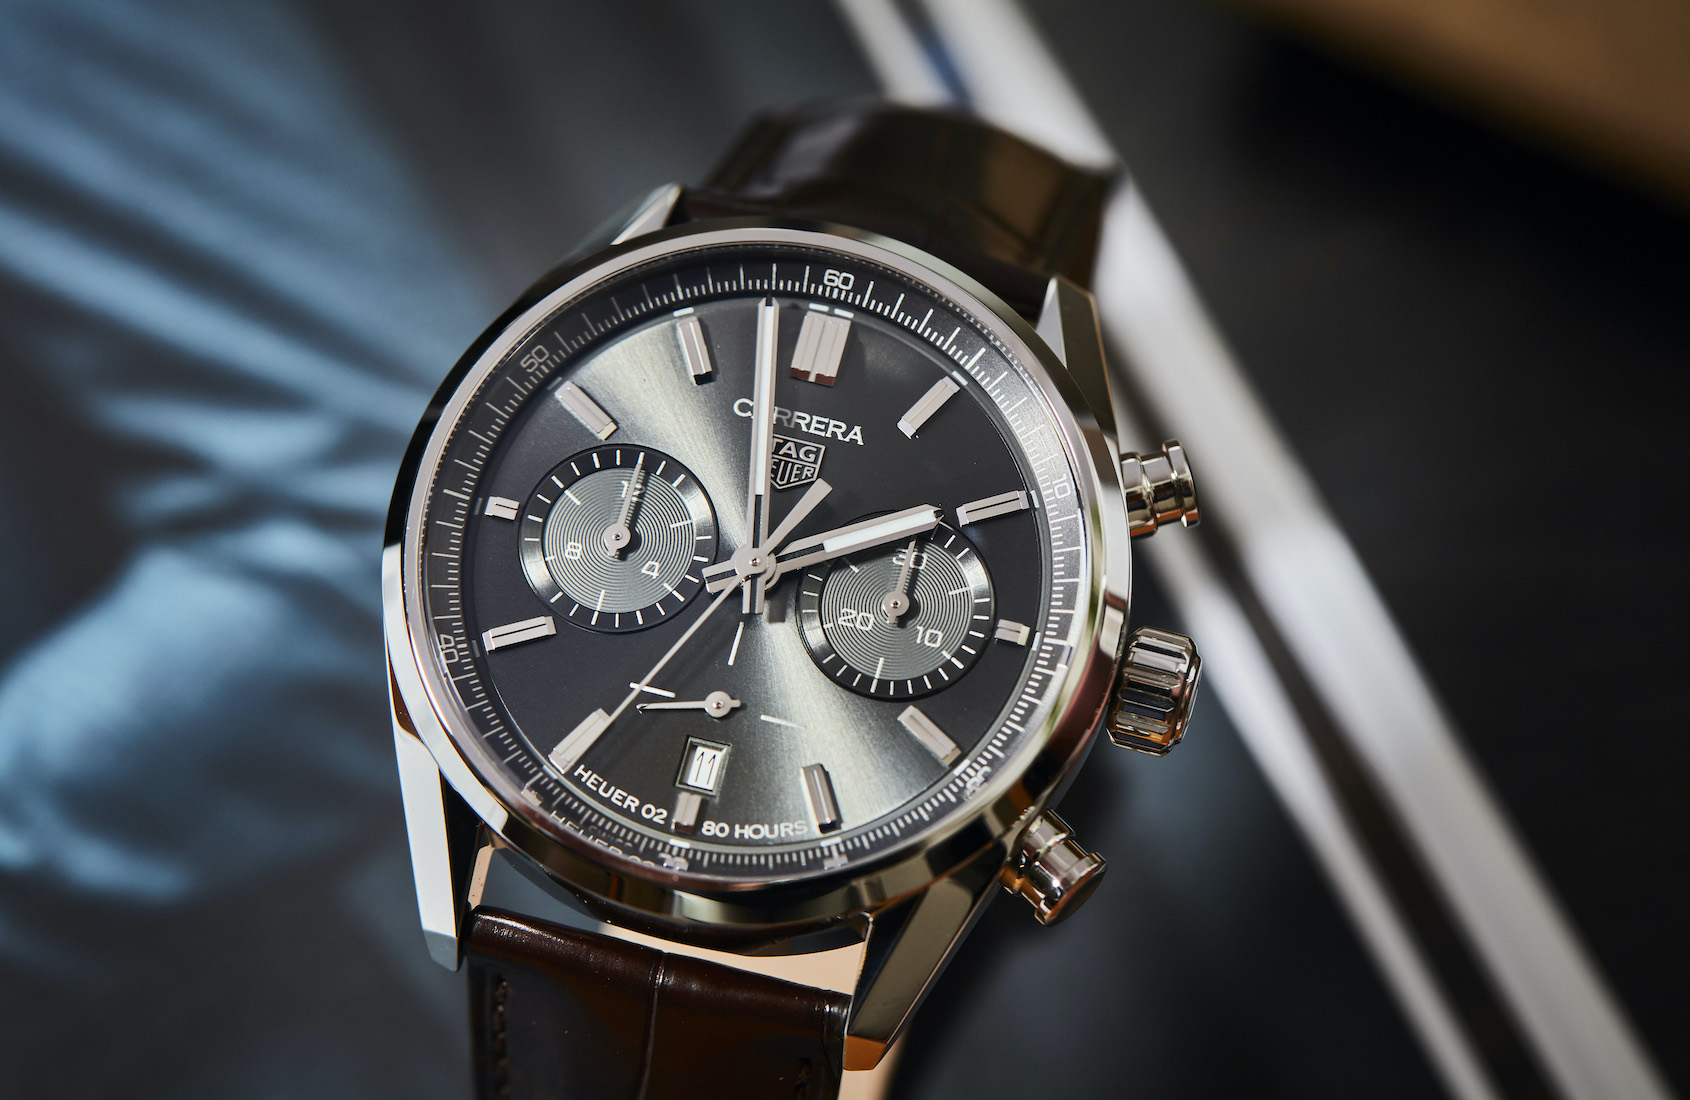 VIDEO: The TAG Heuer Carrera Chronograph collection, a sharp new formula for a classic